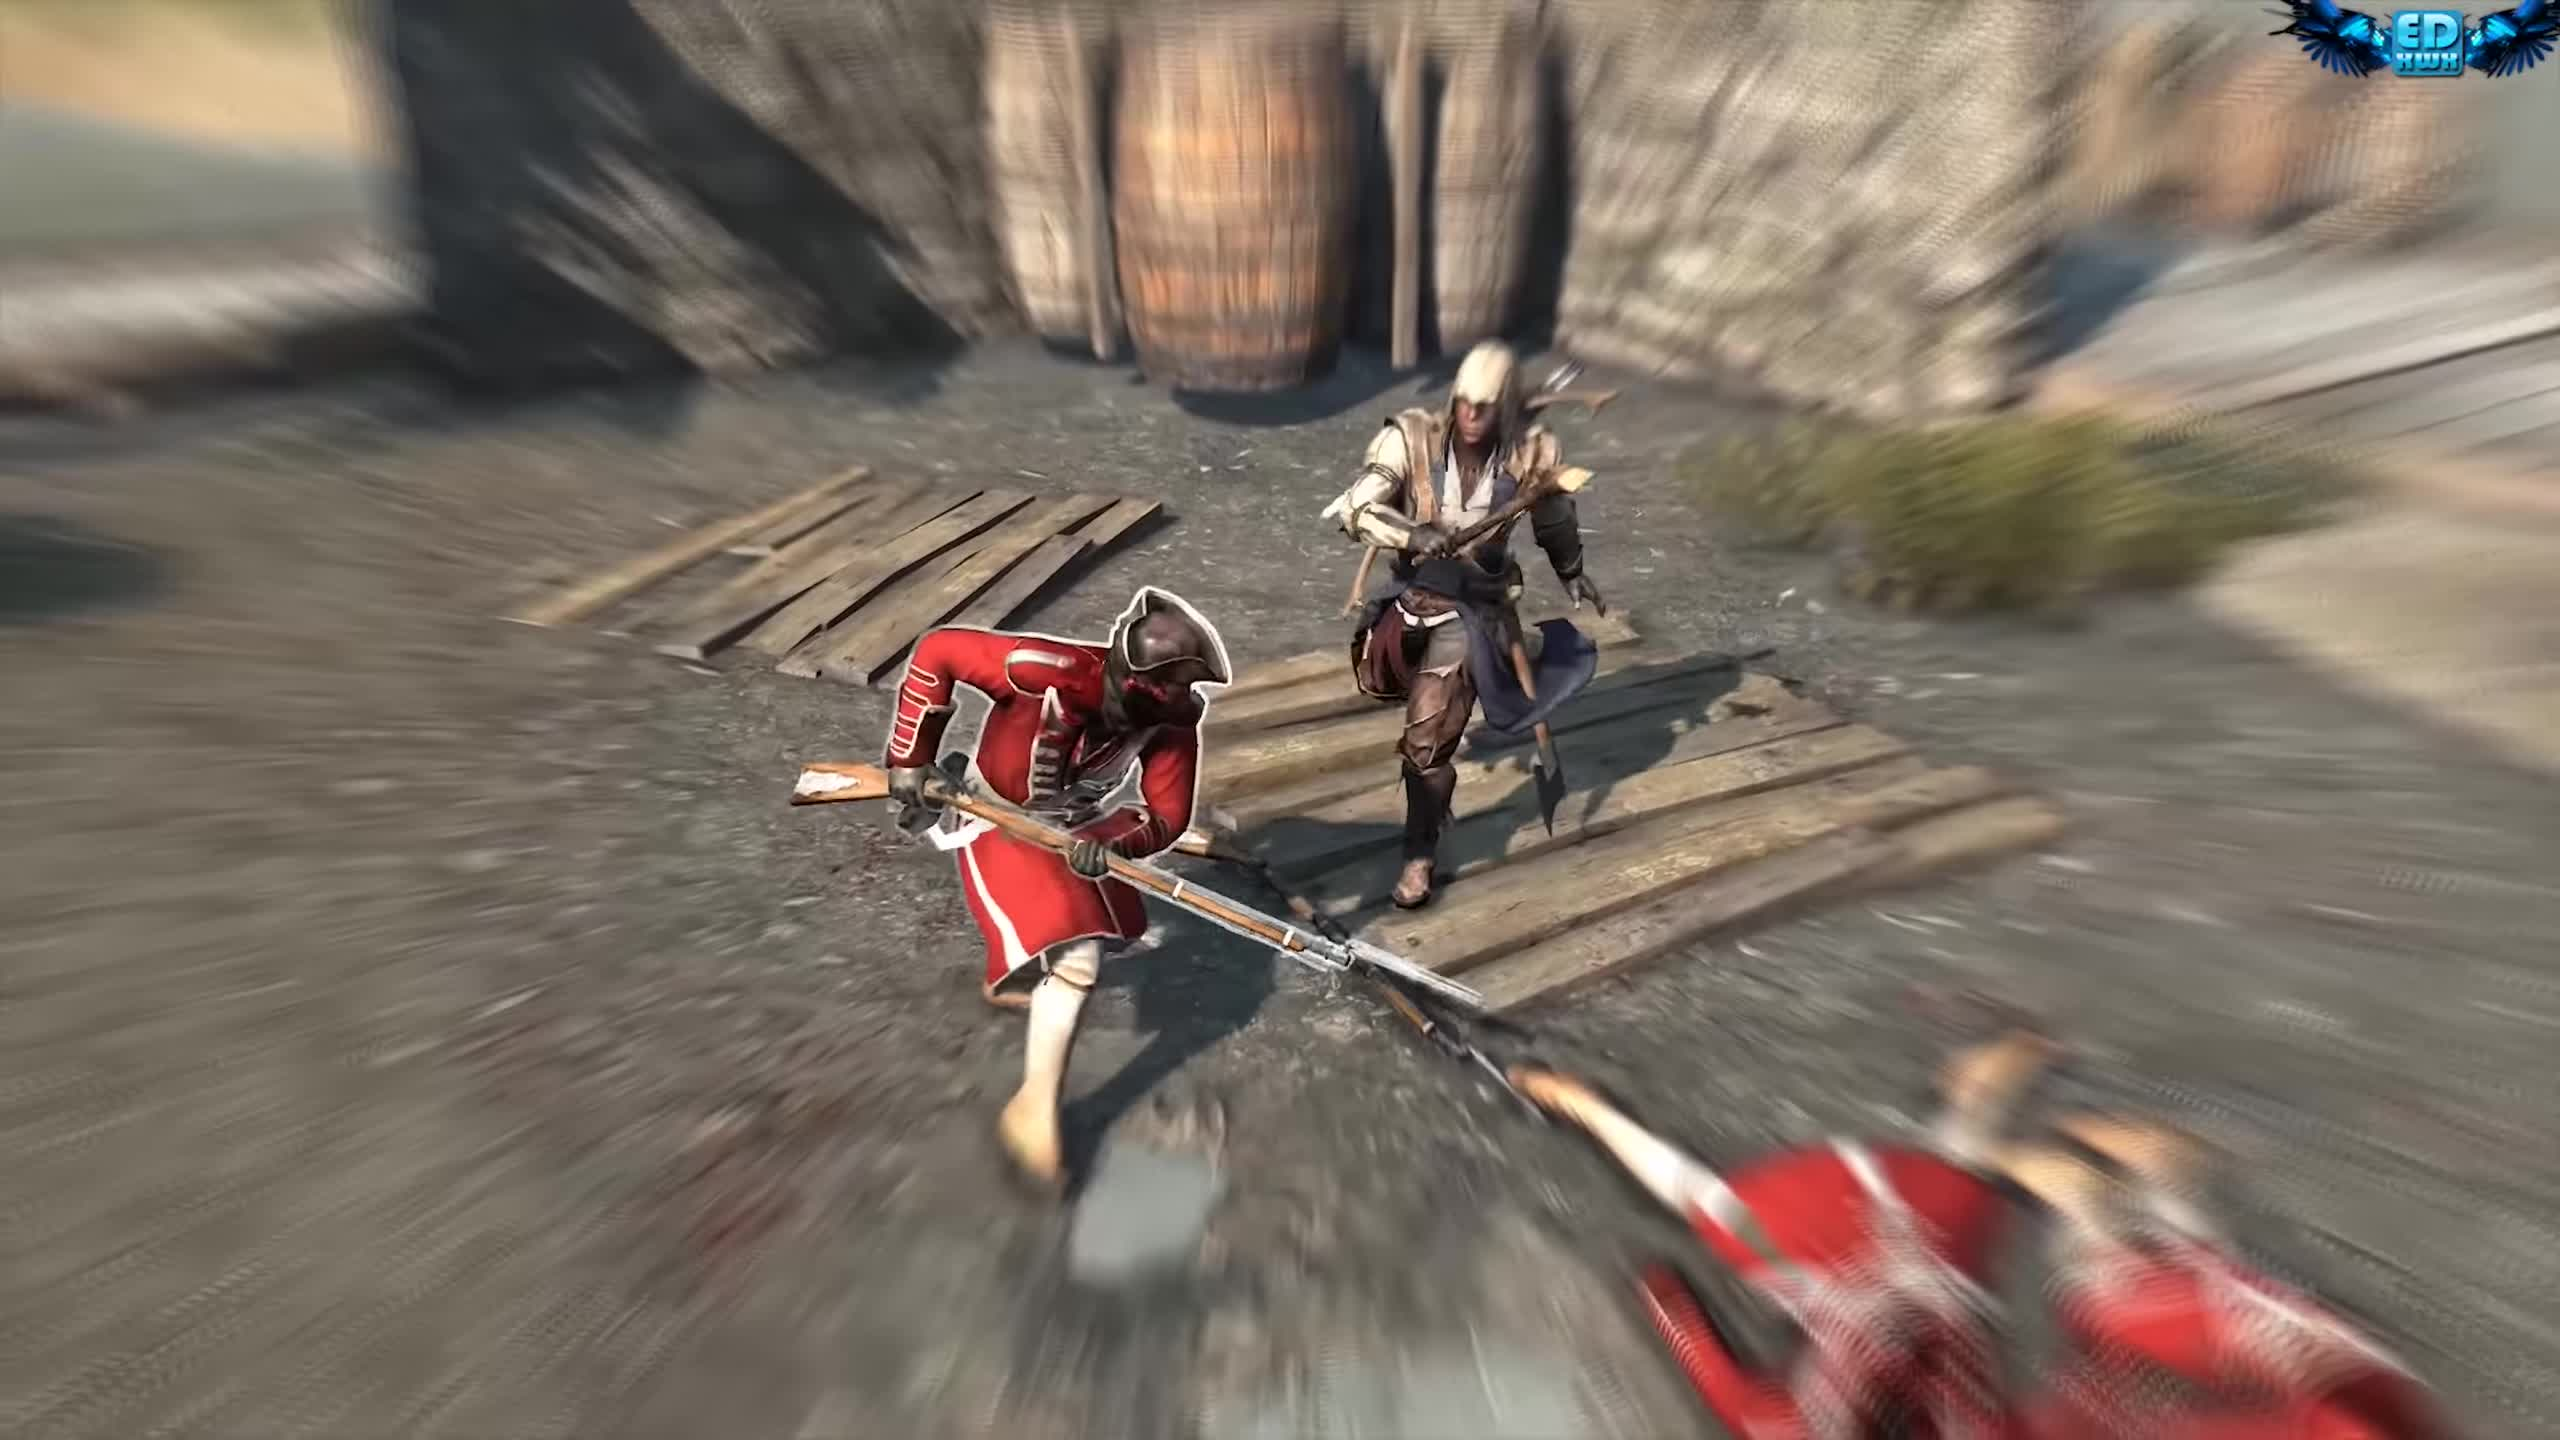 american revolution, assassin's creed 3, assassin-templar, british military, cinematic, connor, desmond miles, gameplay, historical action-adventure, multiplayer, open world, ps3, stealth, trailer, ubisoft, ubisoft montreal, video game, walkthrough, wii u, xbox360, Assassin's Creed 3 Master Connor Free Roam & Combat Ultra Settings GIFs